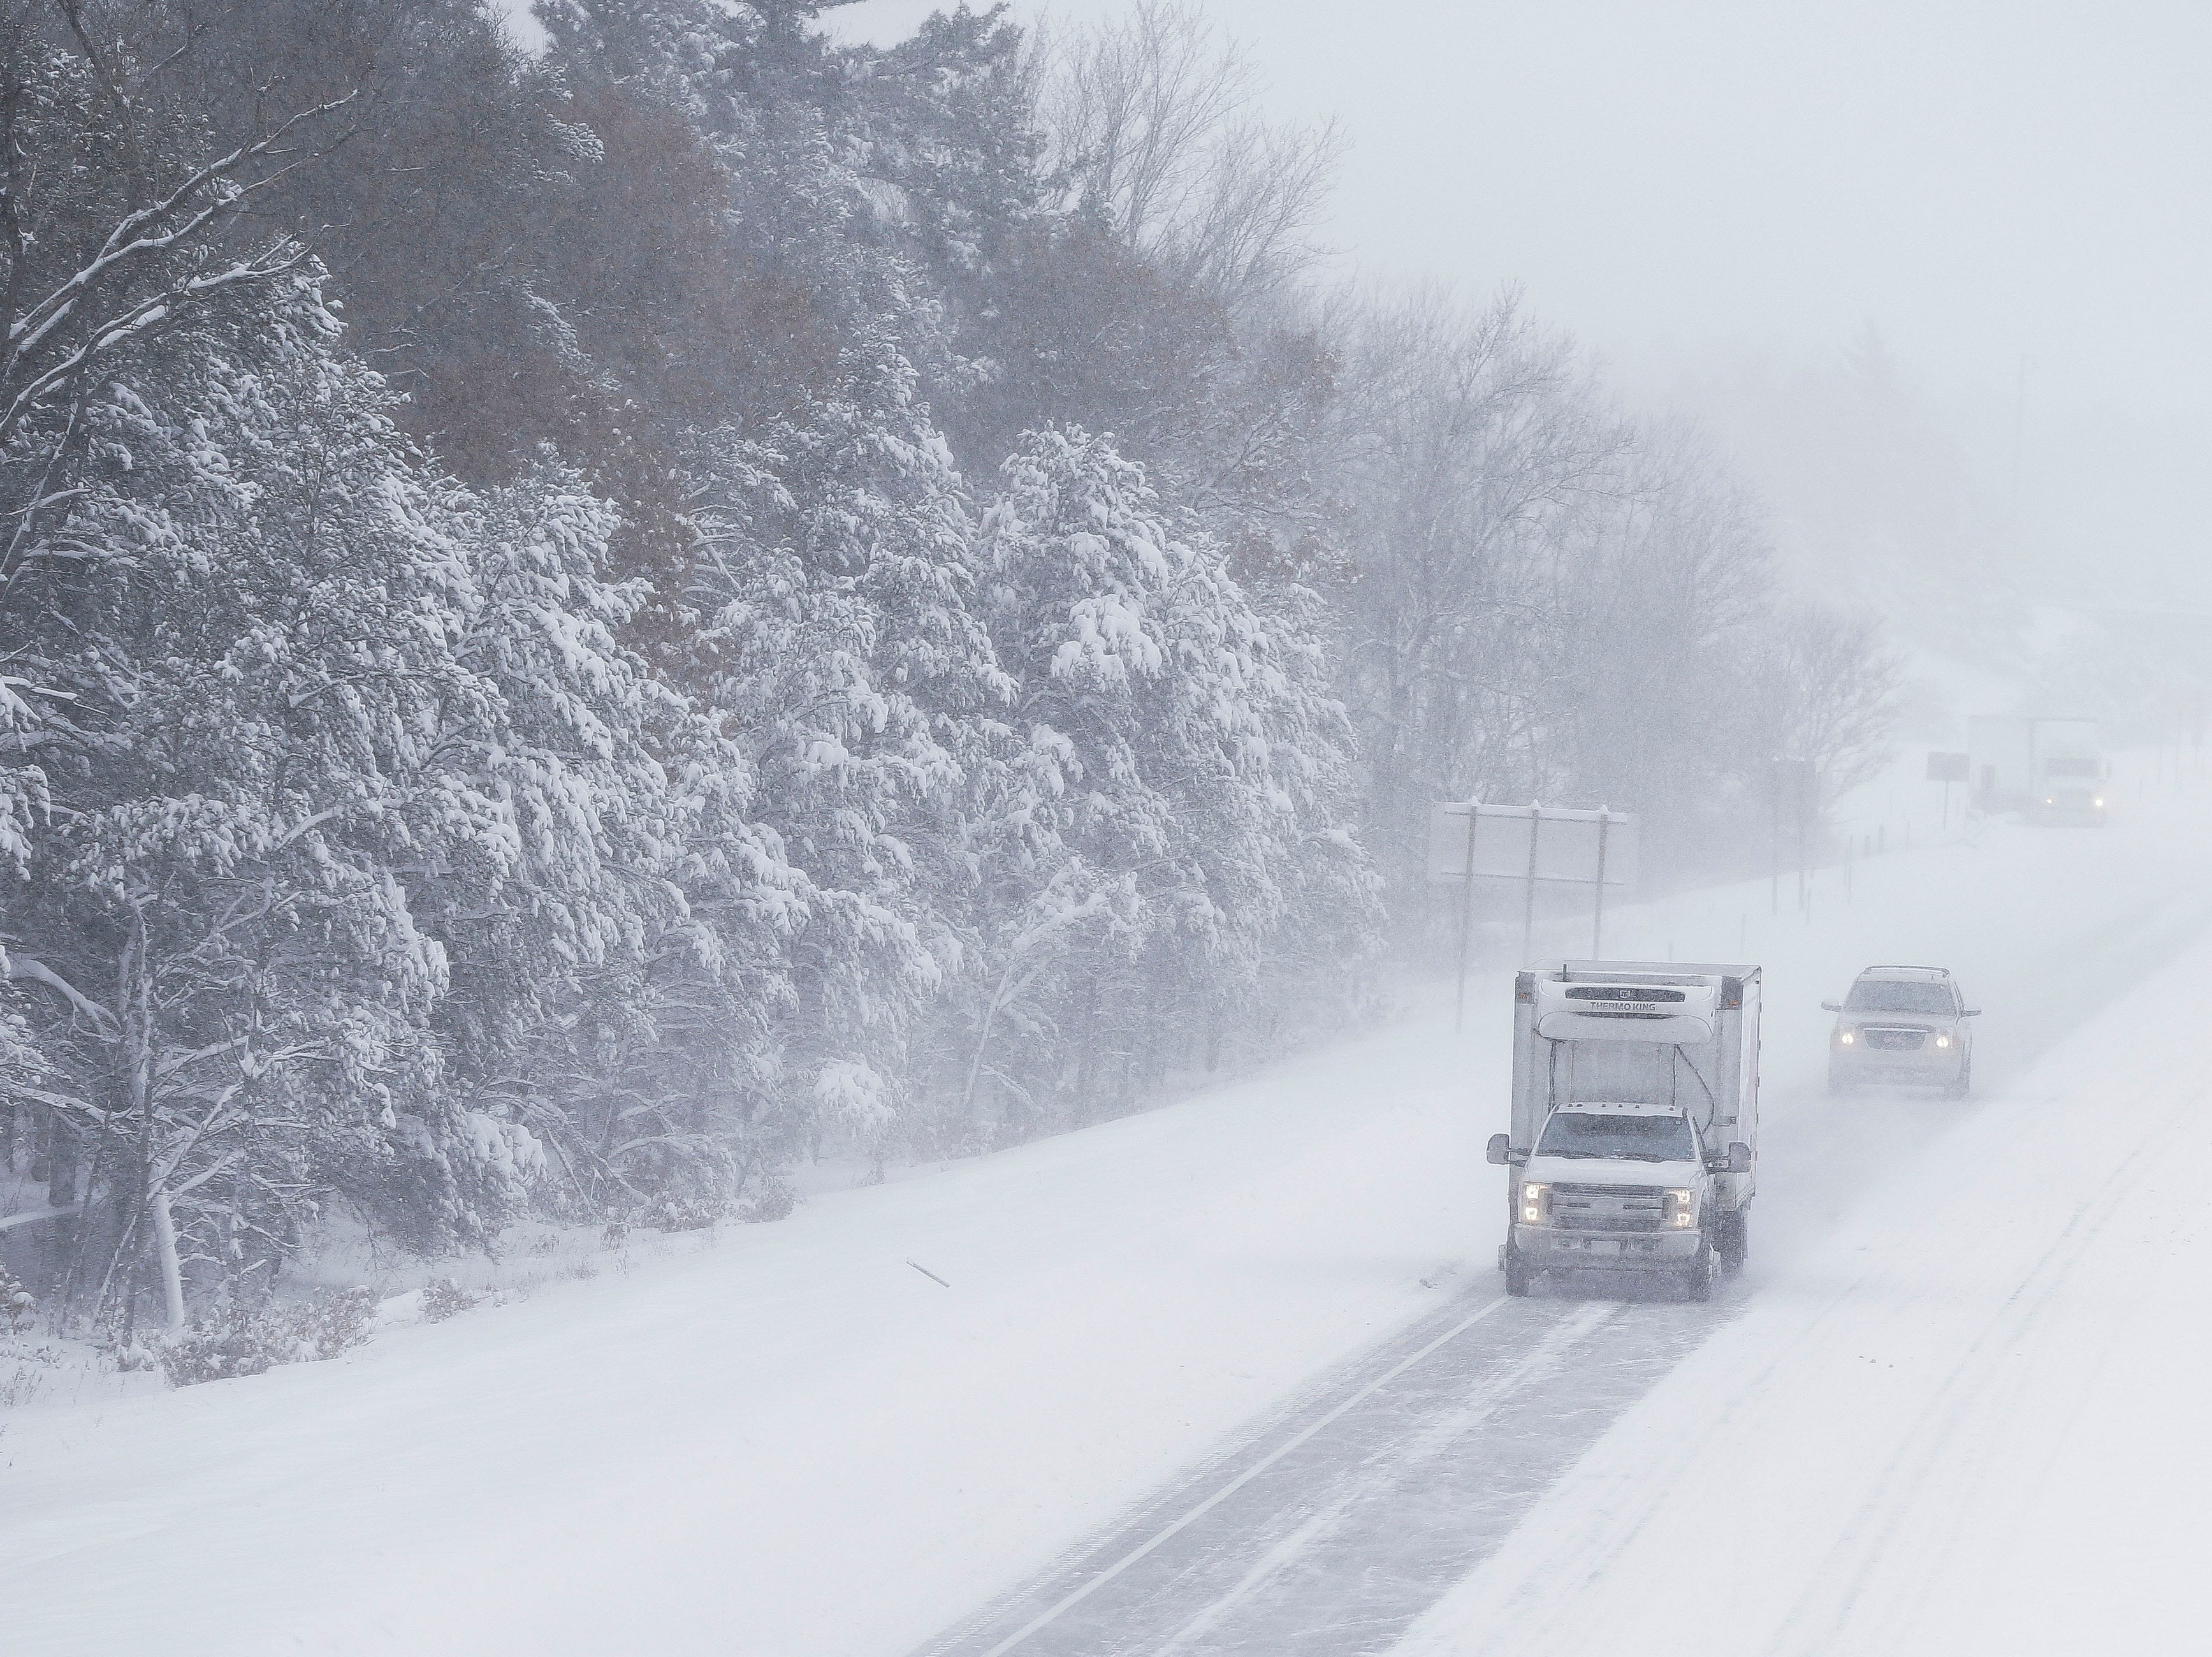 Traffic flows northbound on Interstate 39 on Tuesday, February 12, 2019, in Stevens Point, Wis. A winter storm is expected to drop 8-11 inches of snow in central Wisconsin before clearing Tuesday night.